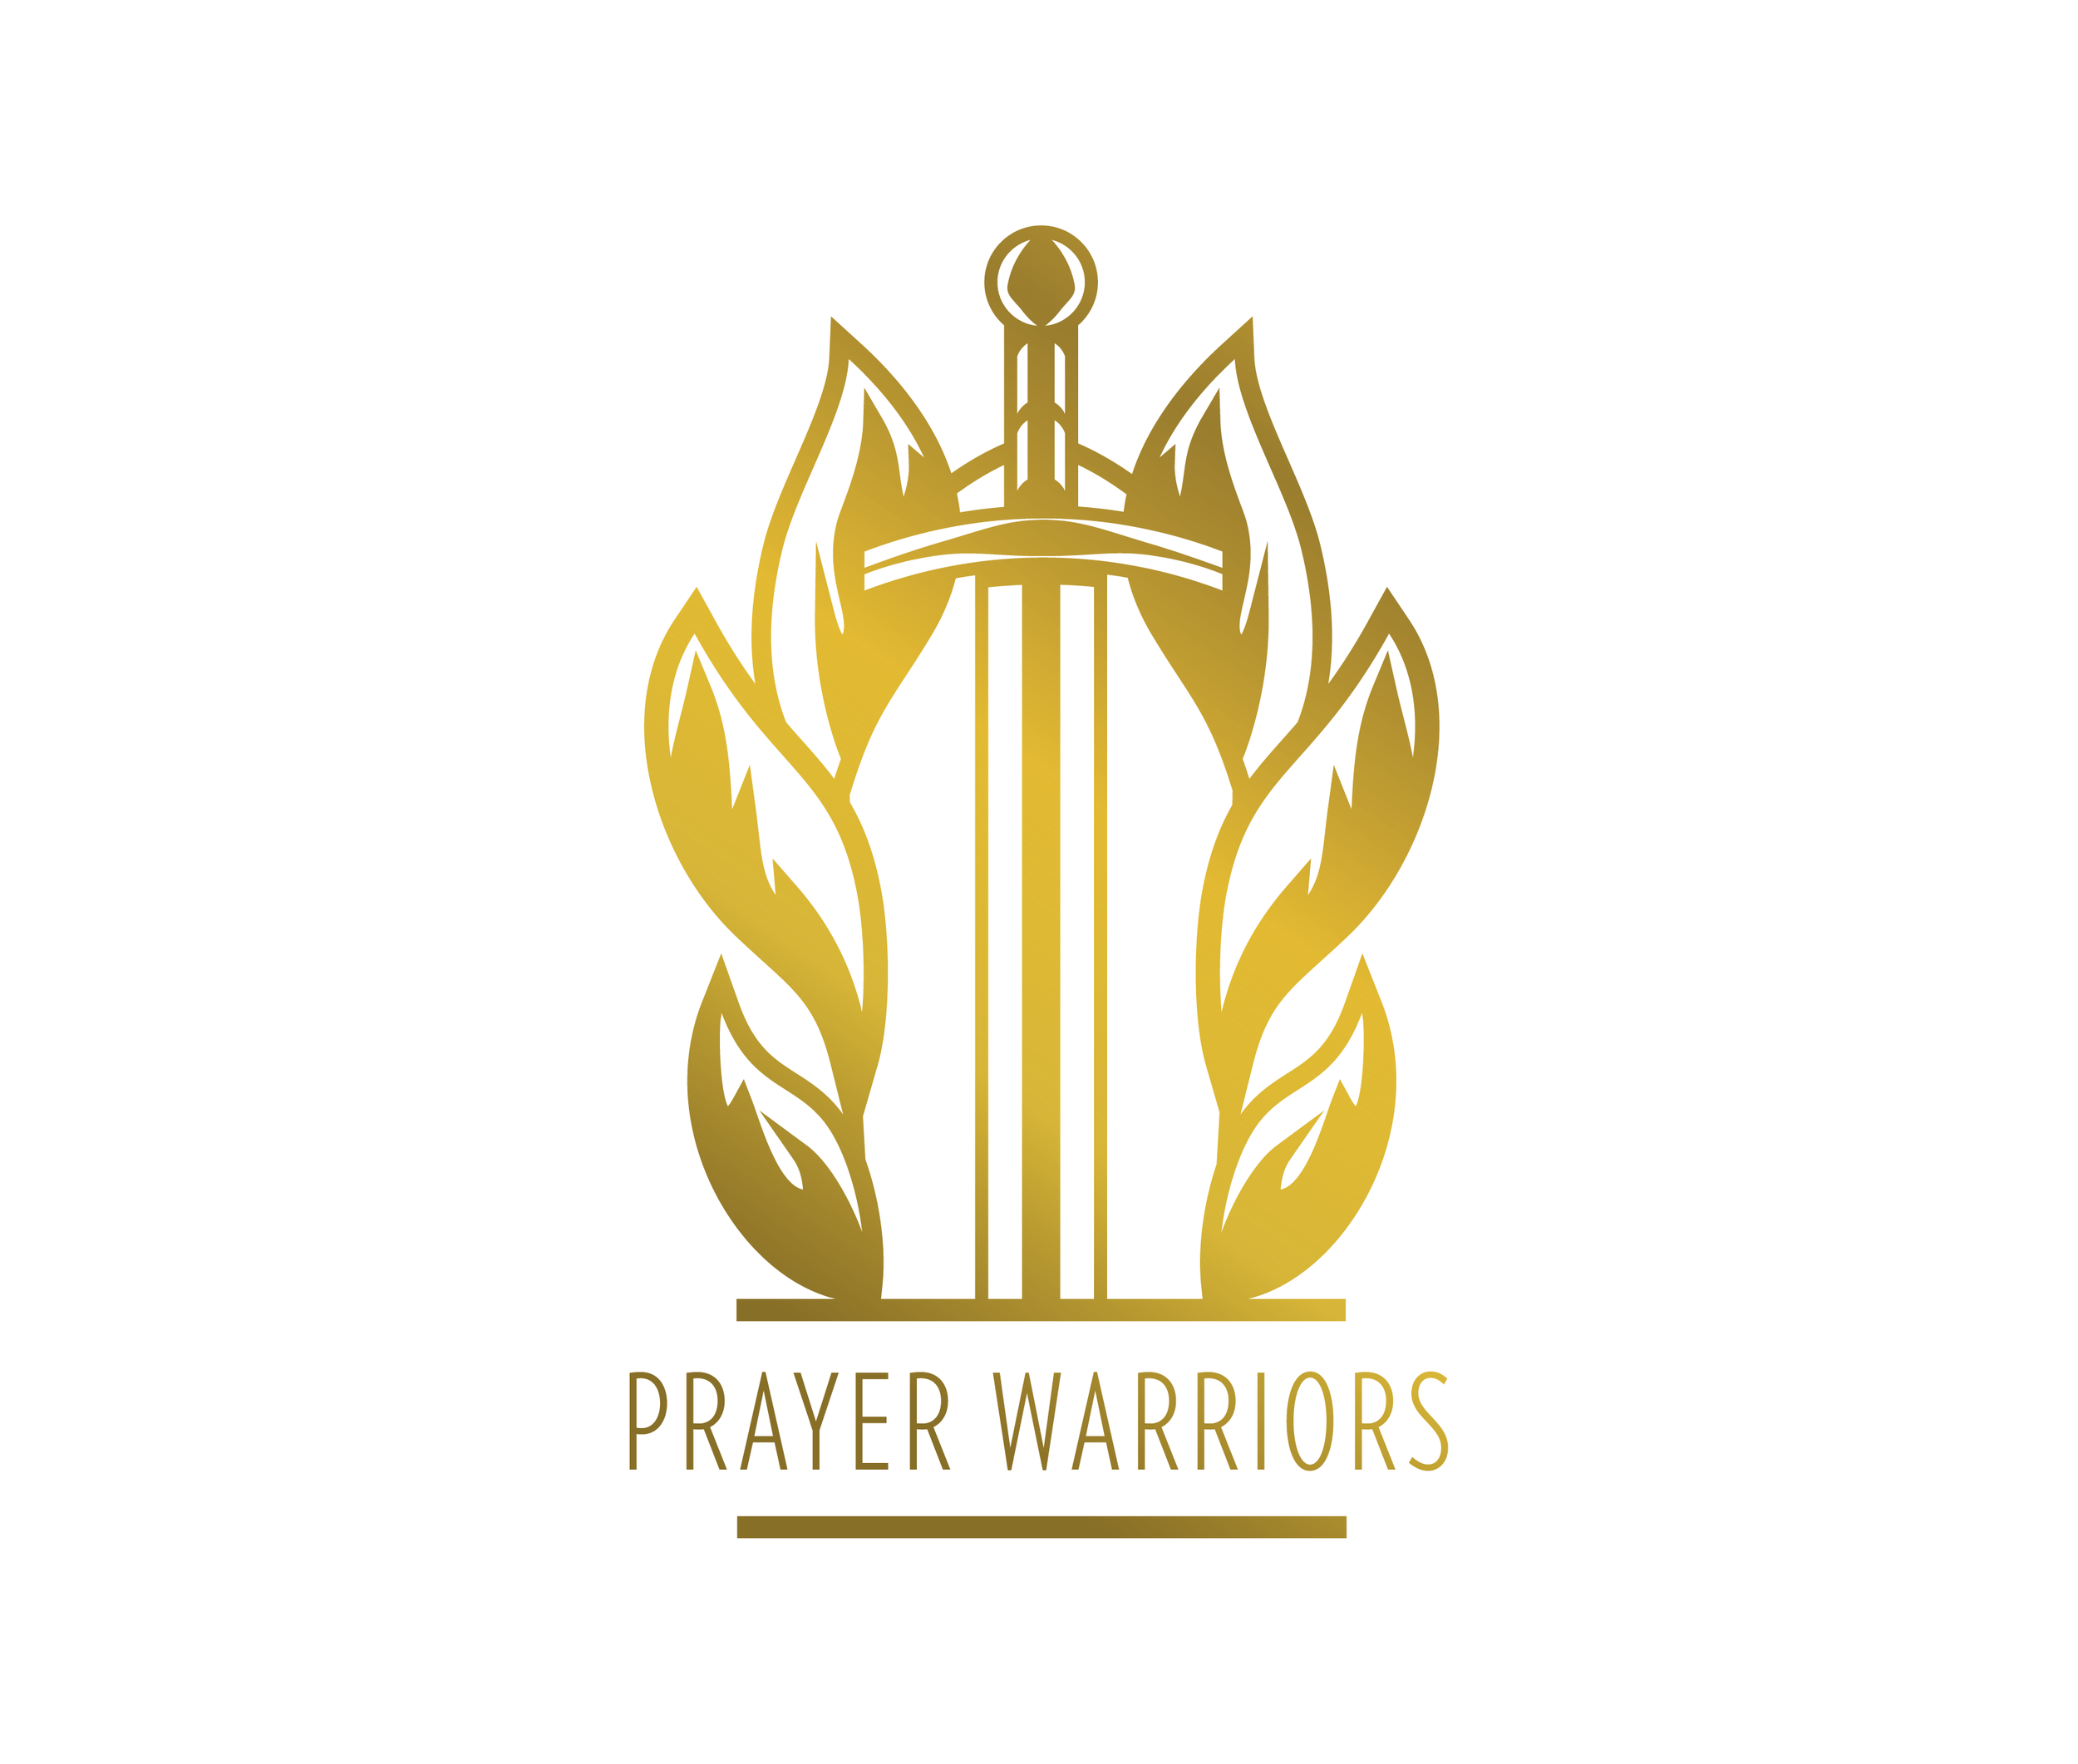 PrayerWarriors_Colors-01.png